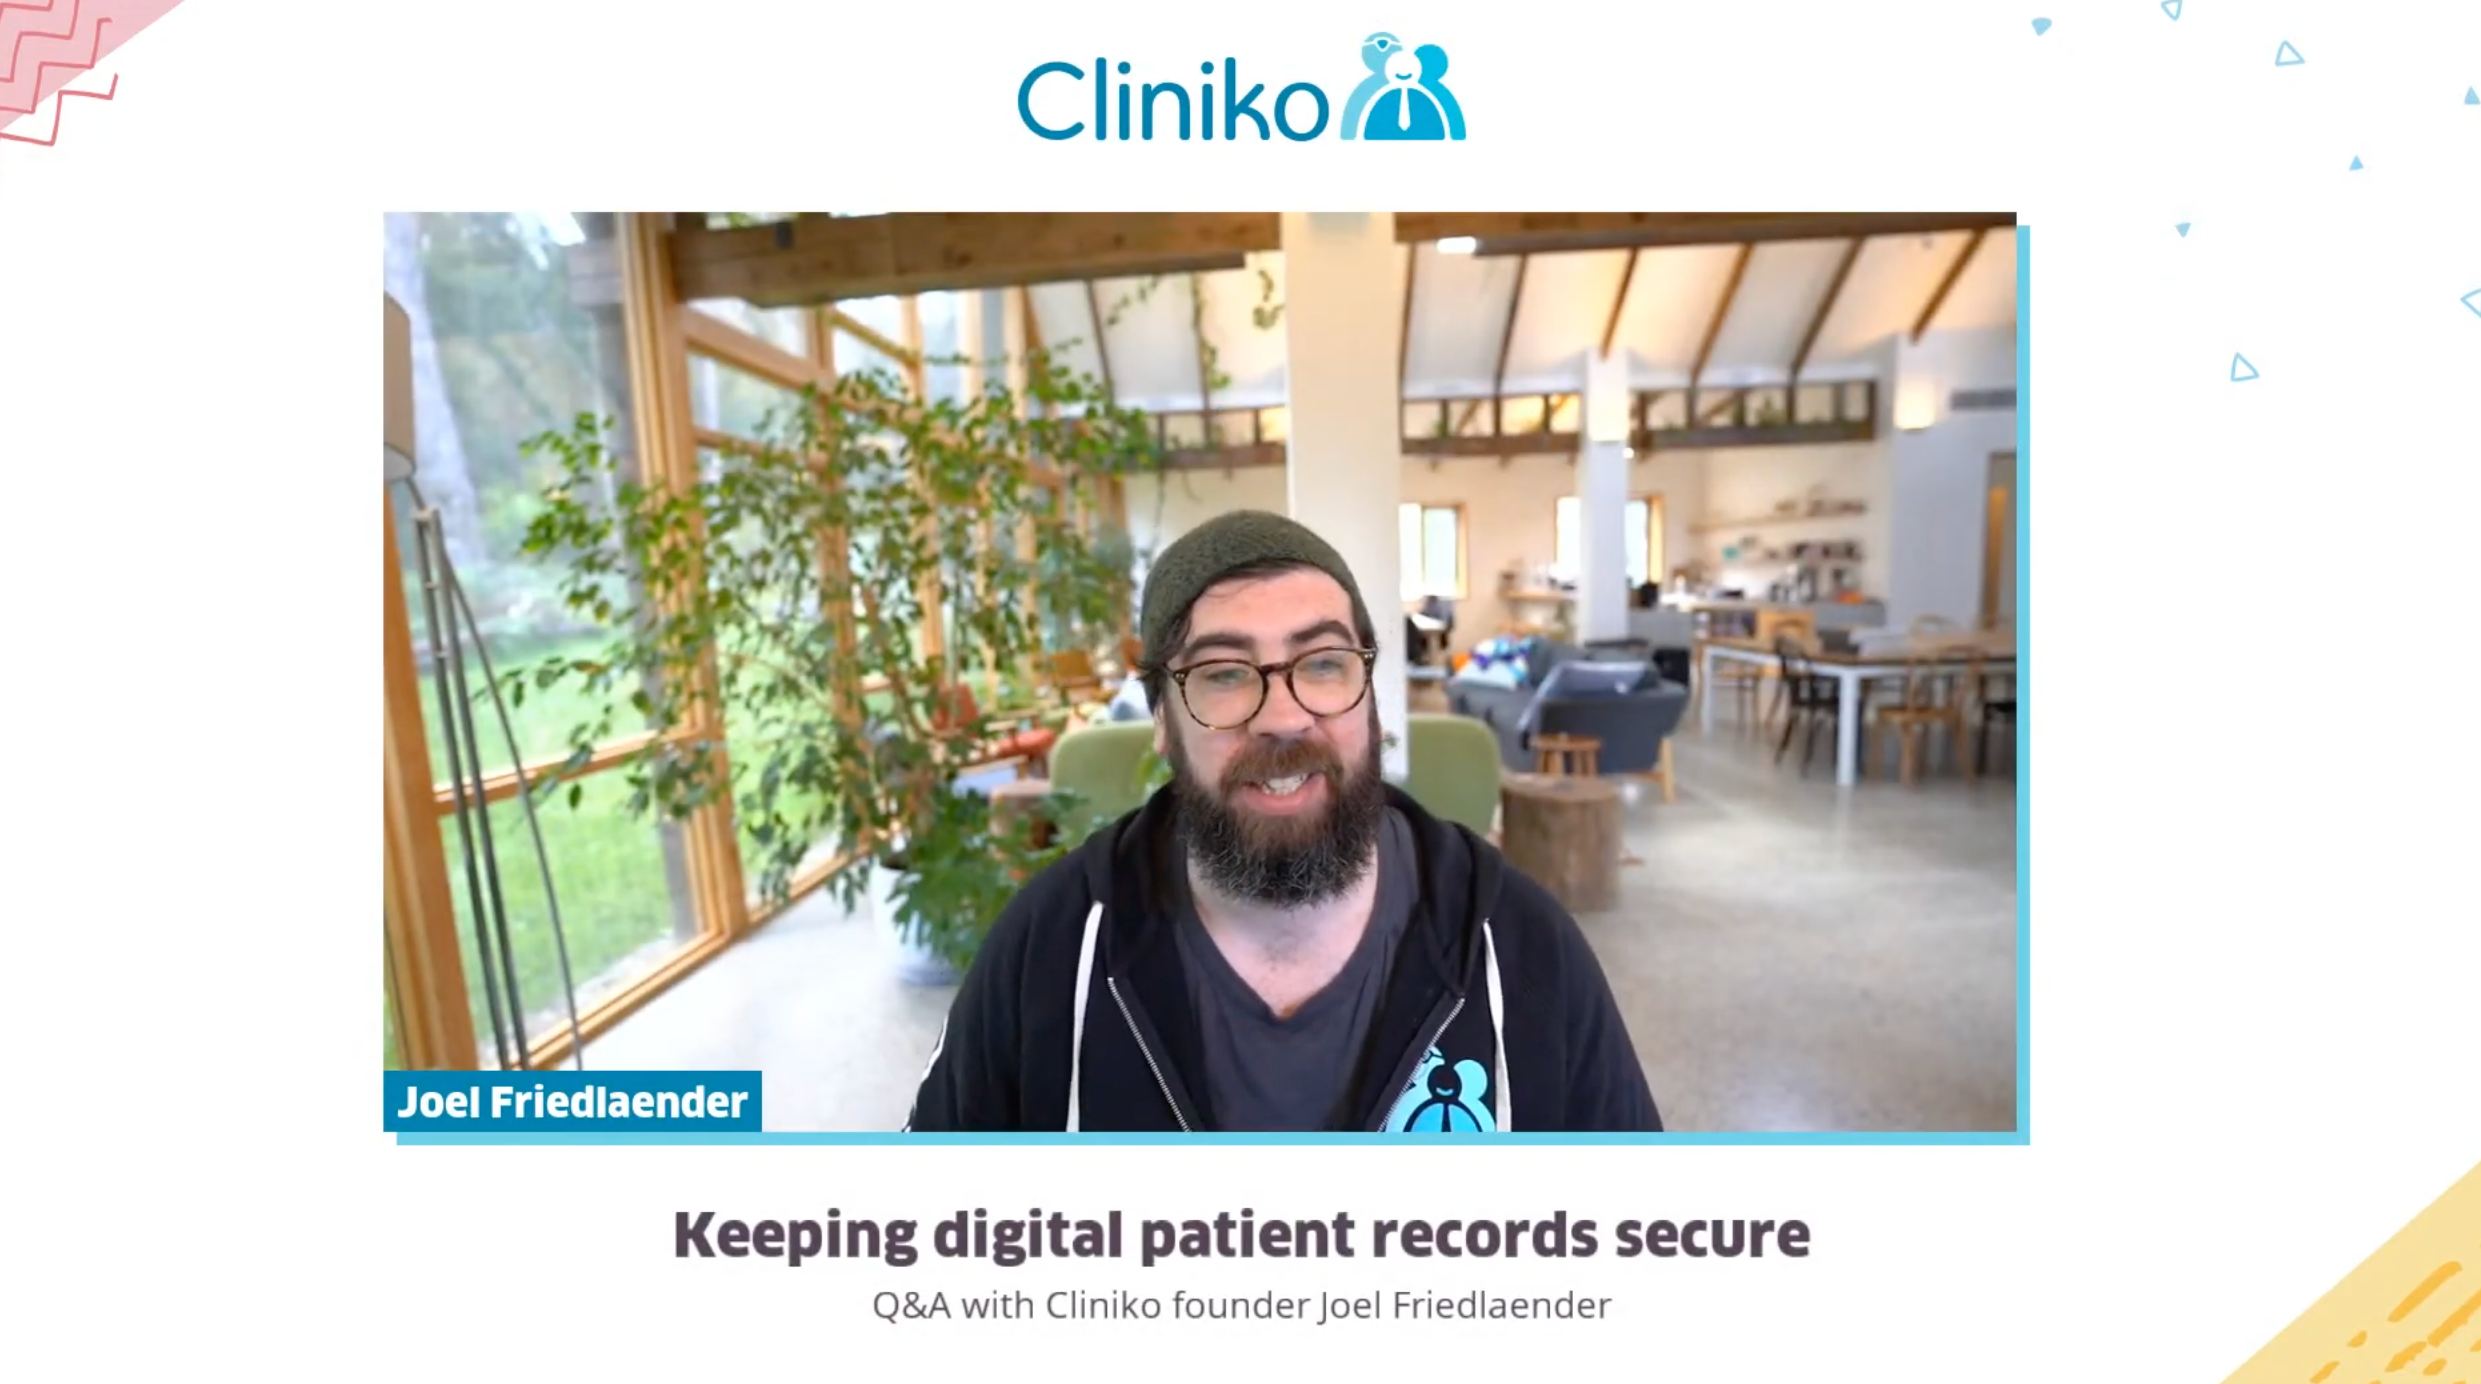 A screenshot of Joel starting the webinar on how to keep digital patient records secure.